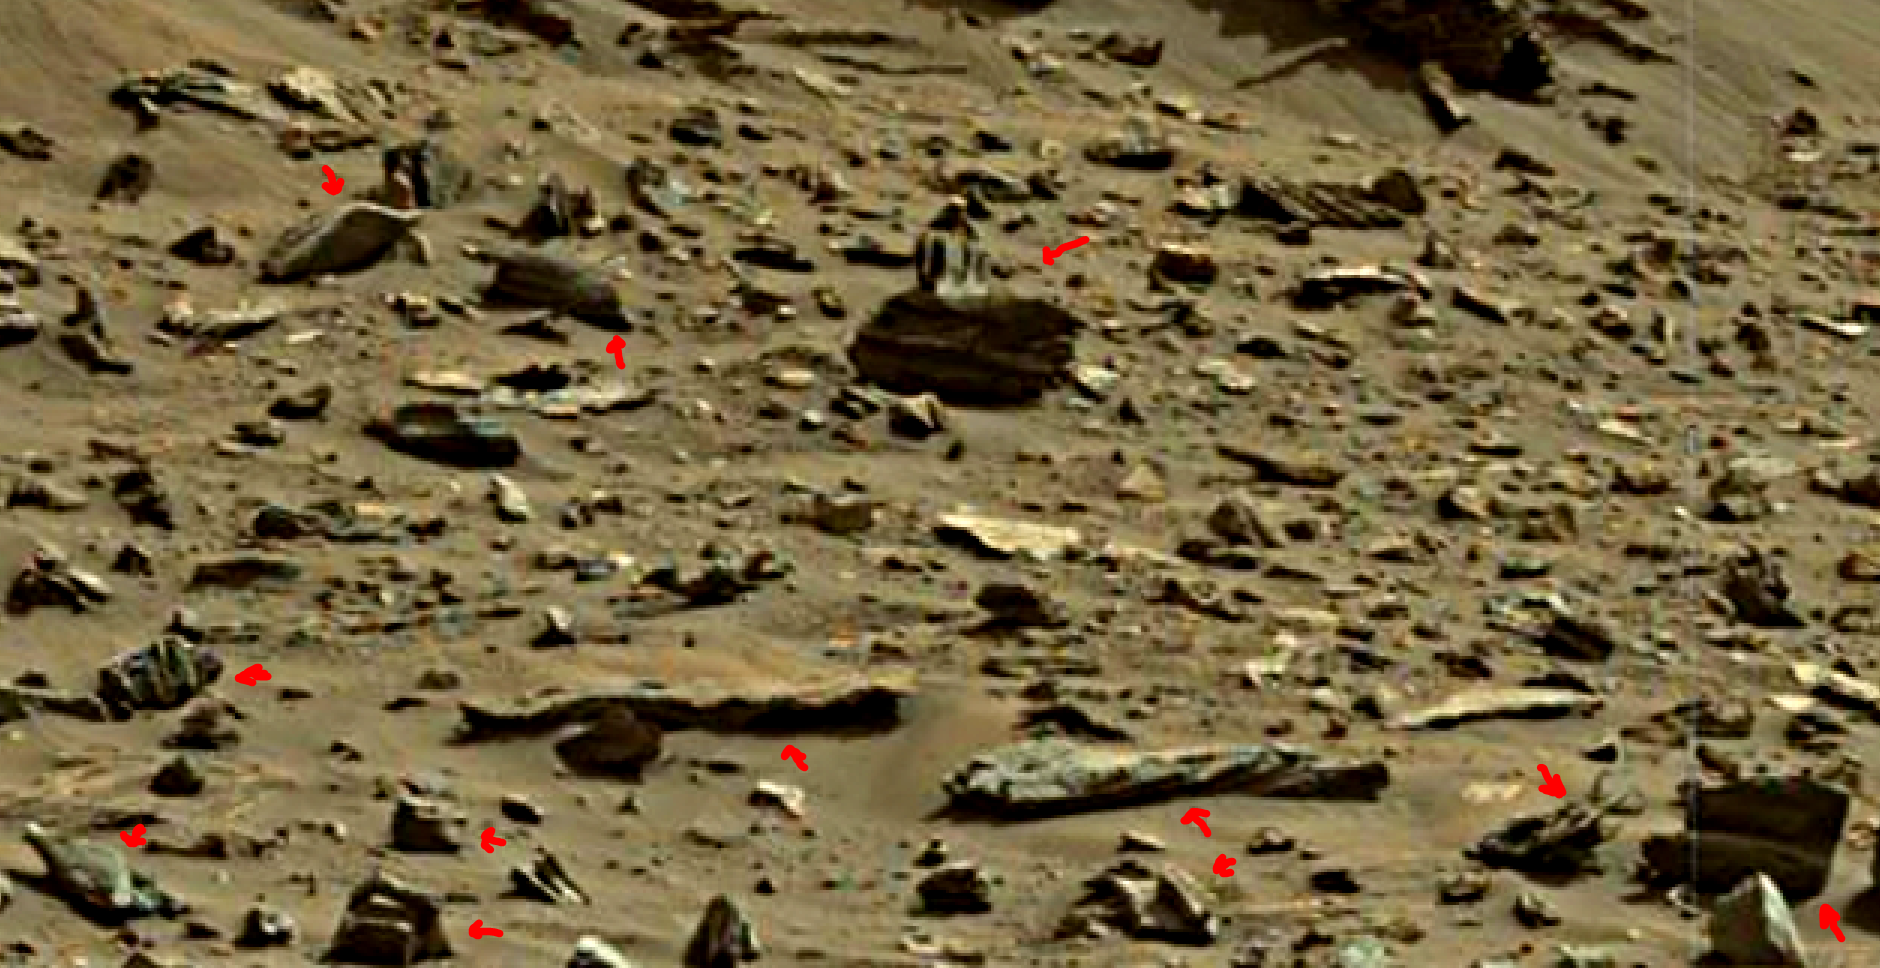 mars-sol-1451-anomaly-artifacts-12-was-life-on-mars